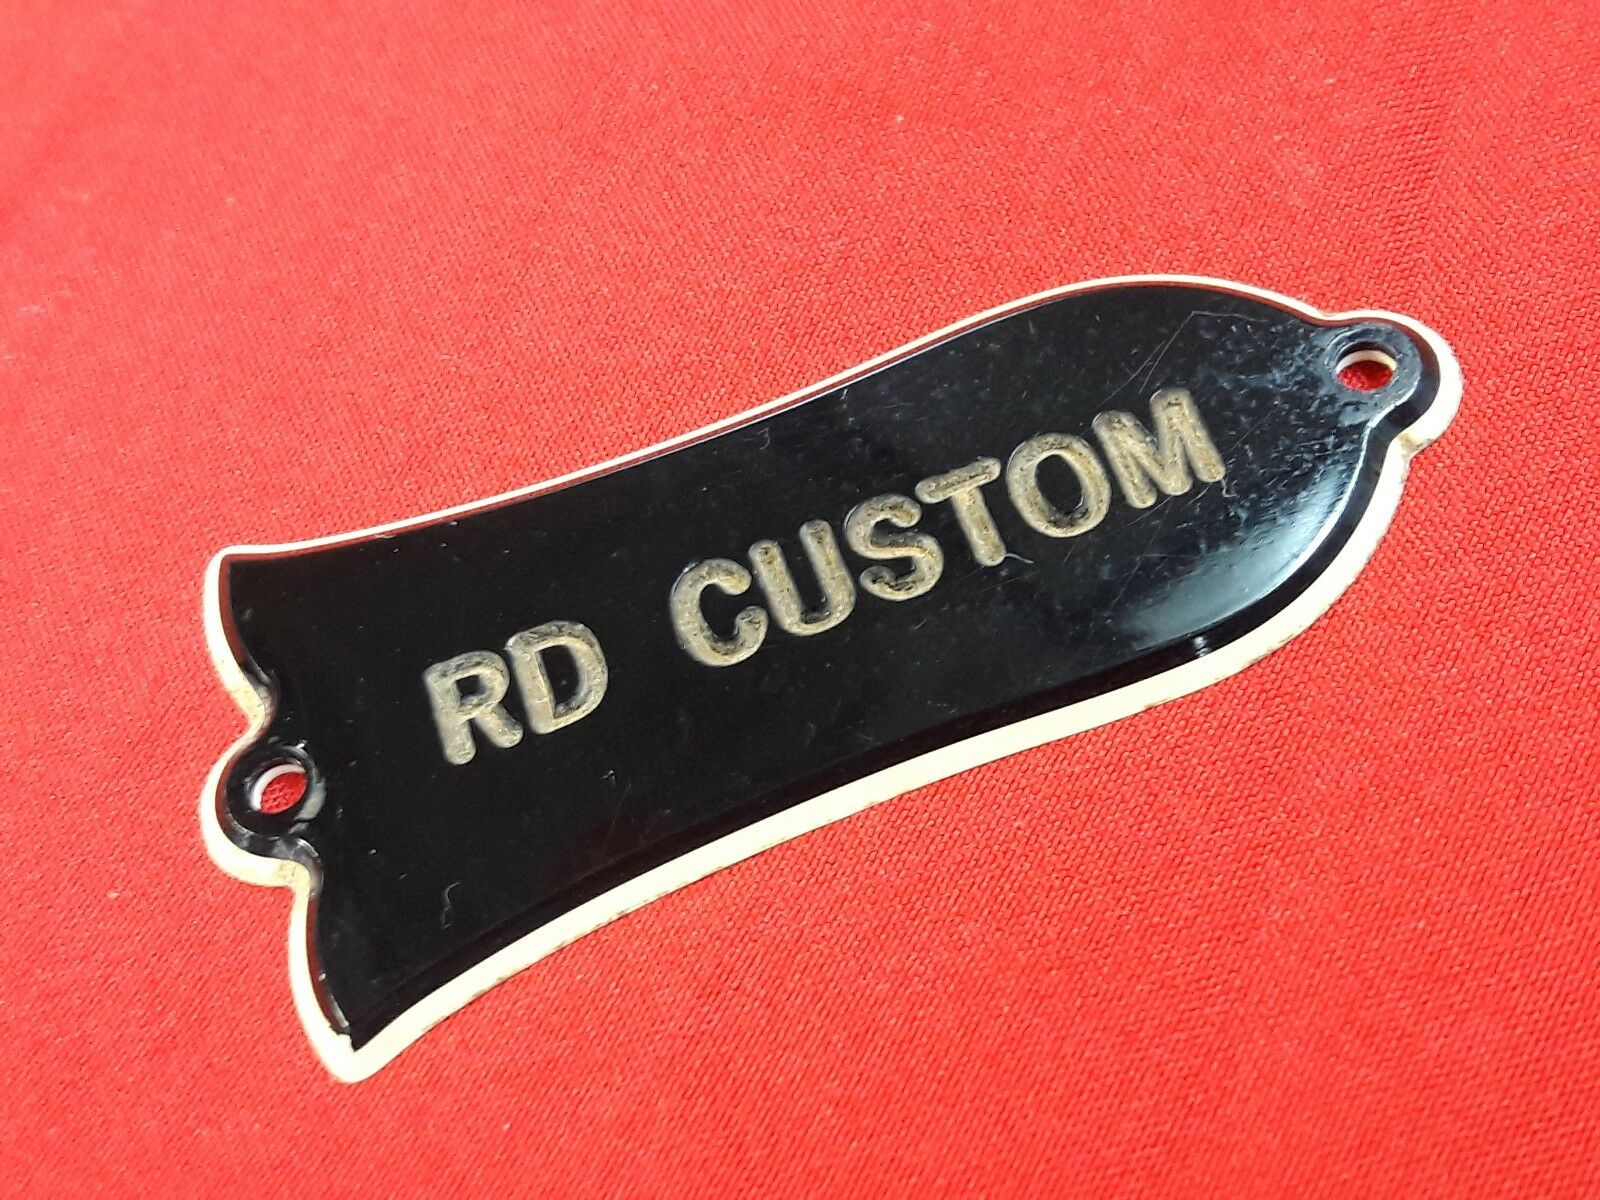 Vintage 1977 Usa Gibson Rd Custom Guitar Truss Rod Cover 1978 1979 Cavity Trussrod Model 1 Of 5only Available